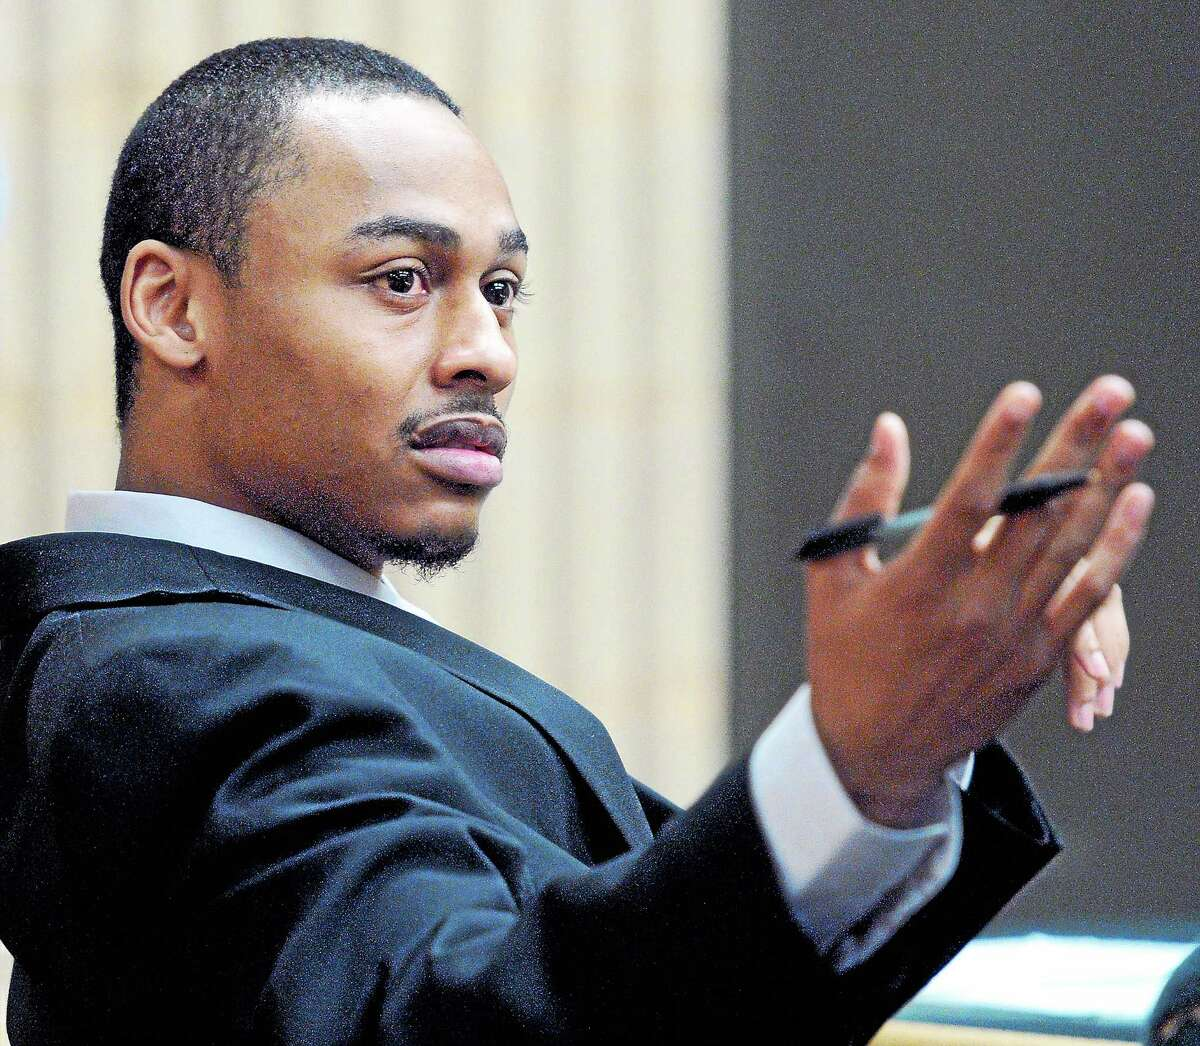 (Arnold Gold-New Haven Register) Cordaryl Silva gestures as his trial begins at Milford Superior Court on 4/1/2014.